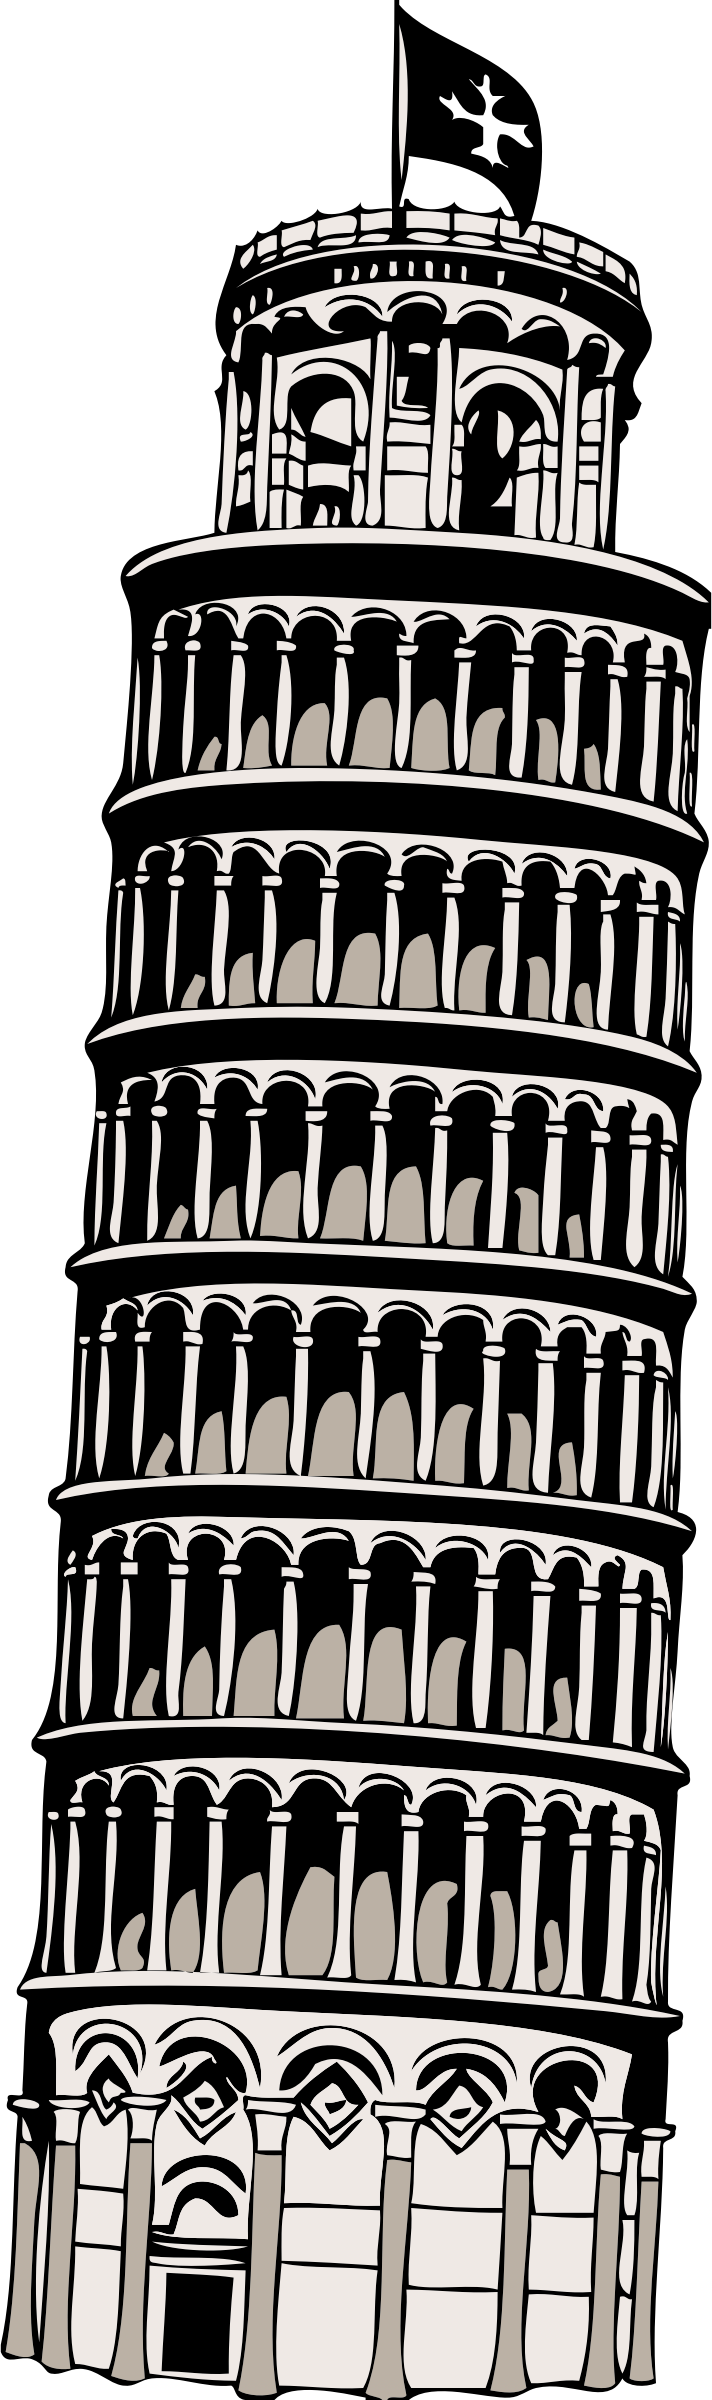 Tower clipart pisa clipart. Leaning of big image